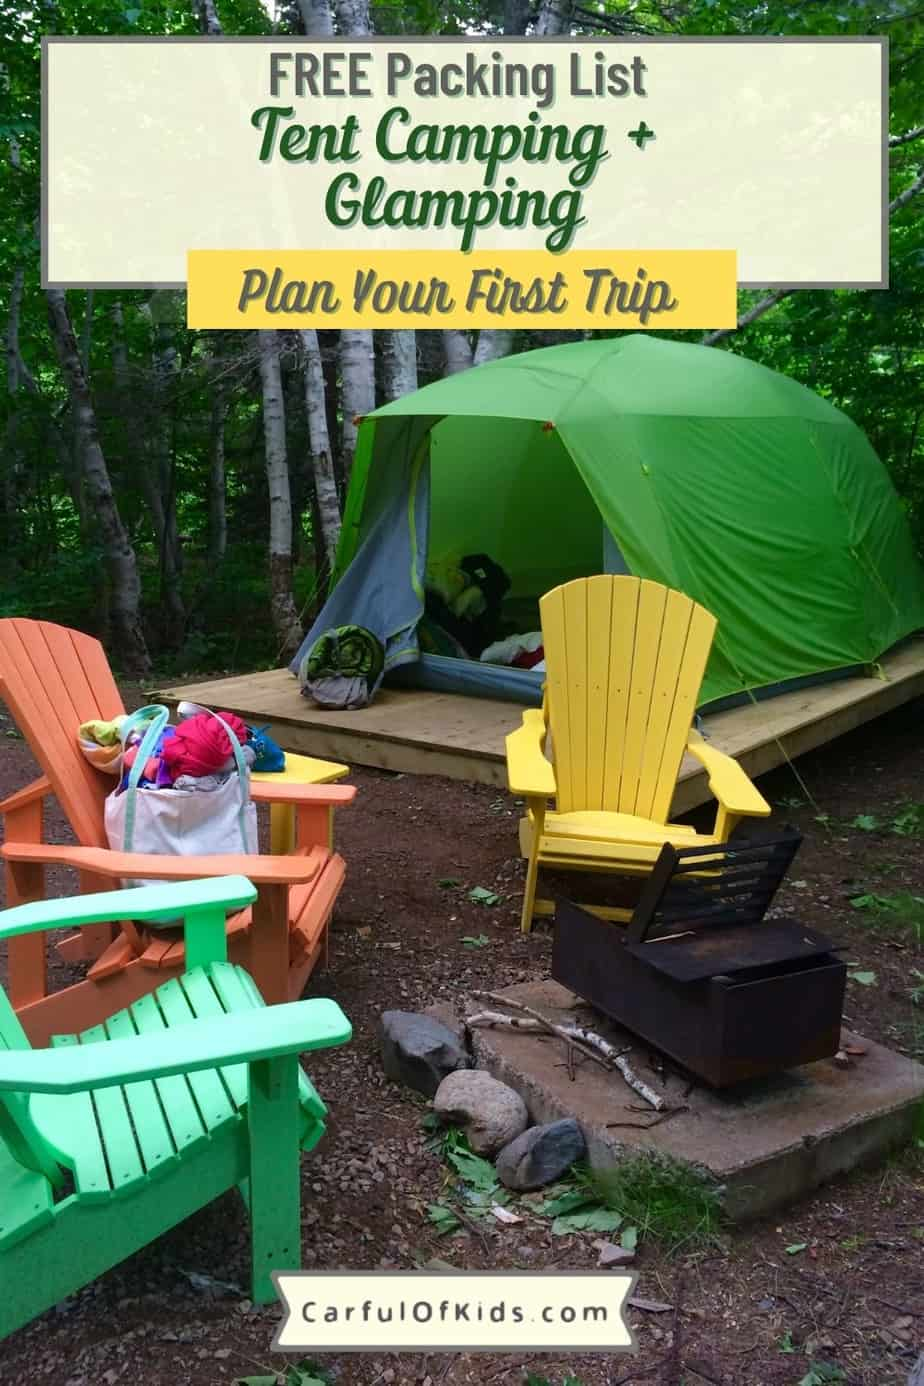 The kids want to go camping. Here's your guide to plan your first camping trip along with a packing list for glamping. What to Pack for a Family Camping Trip | How do you plan your first camping trip | What do you need to cook outdoors #Glamping #Camping #PackingList